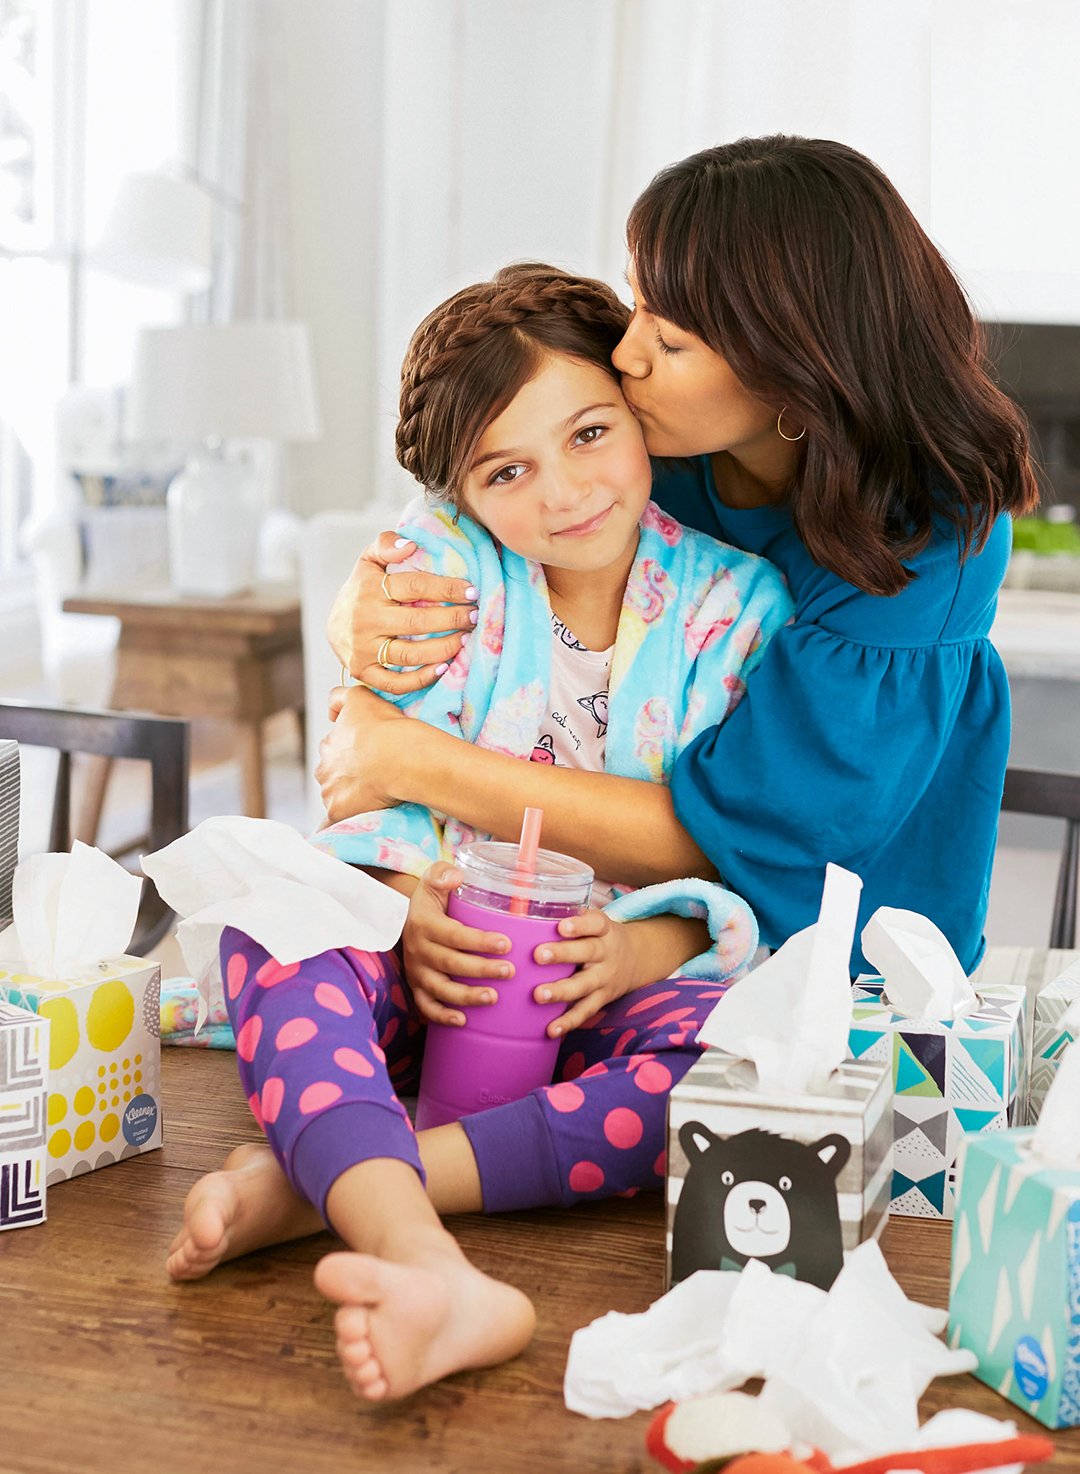 10 Tips from Pediatrician Moms on How to Cure Colds